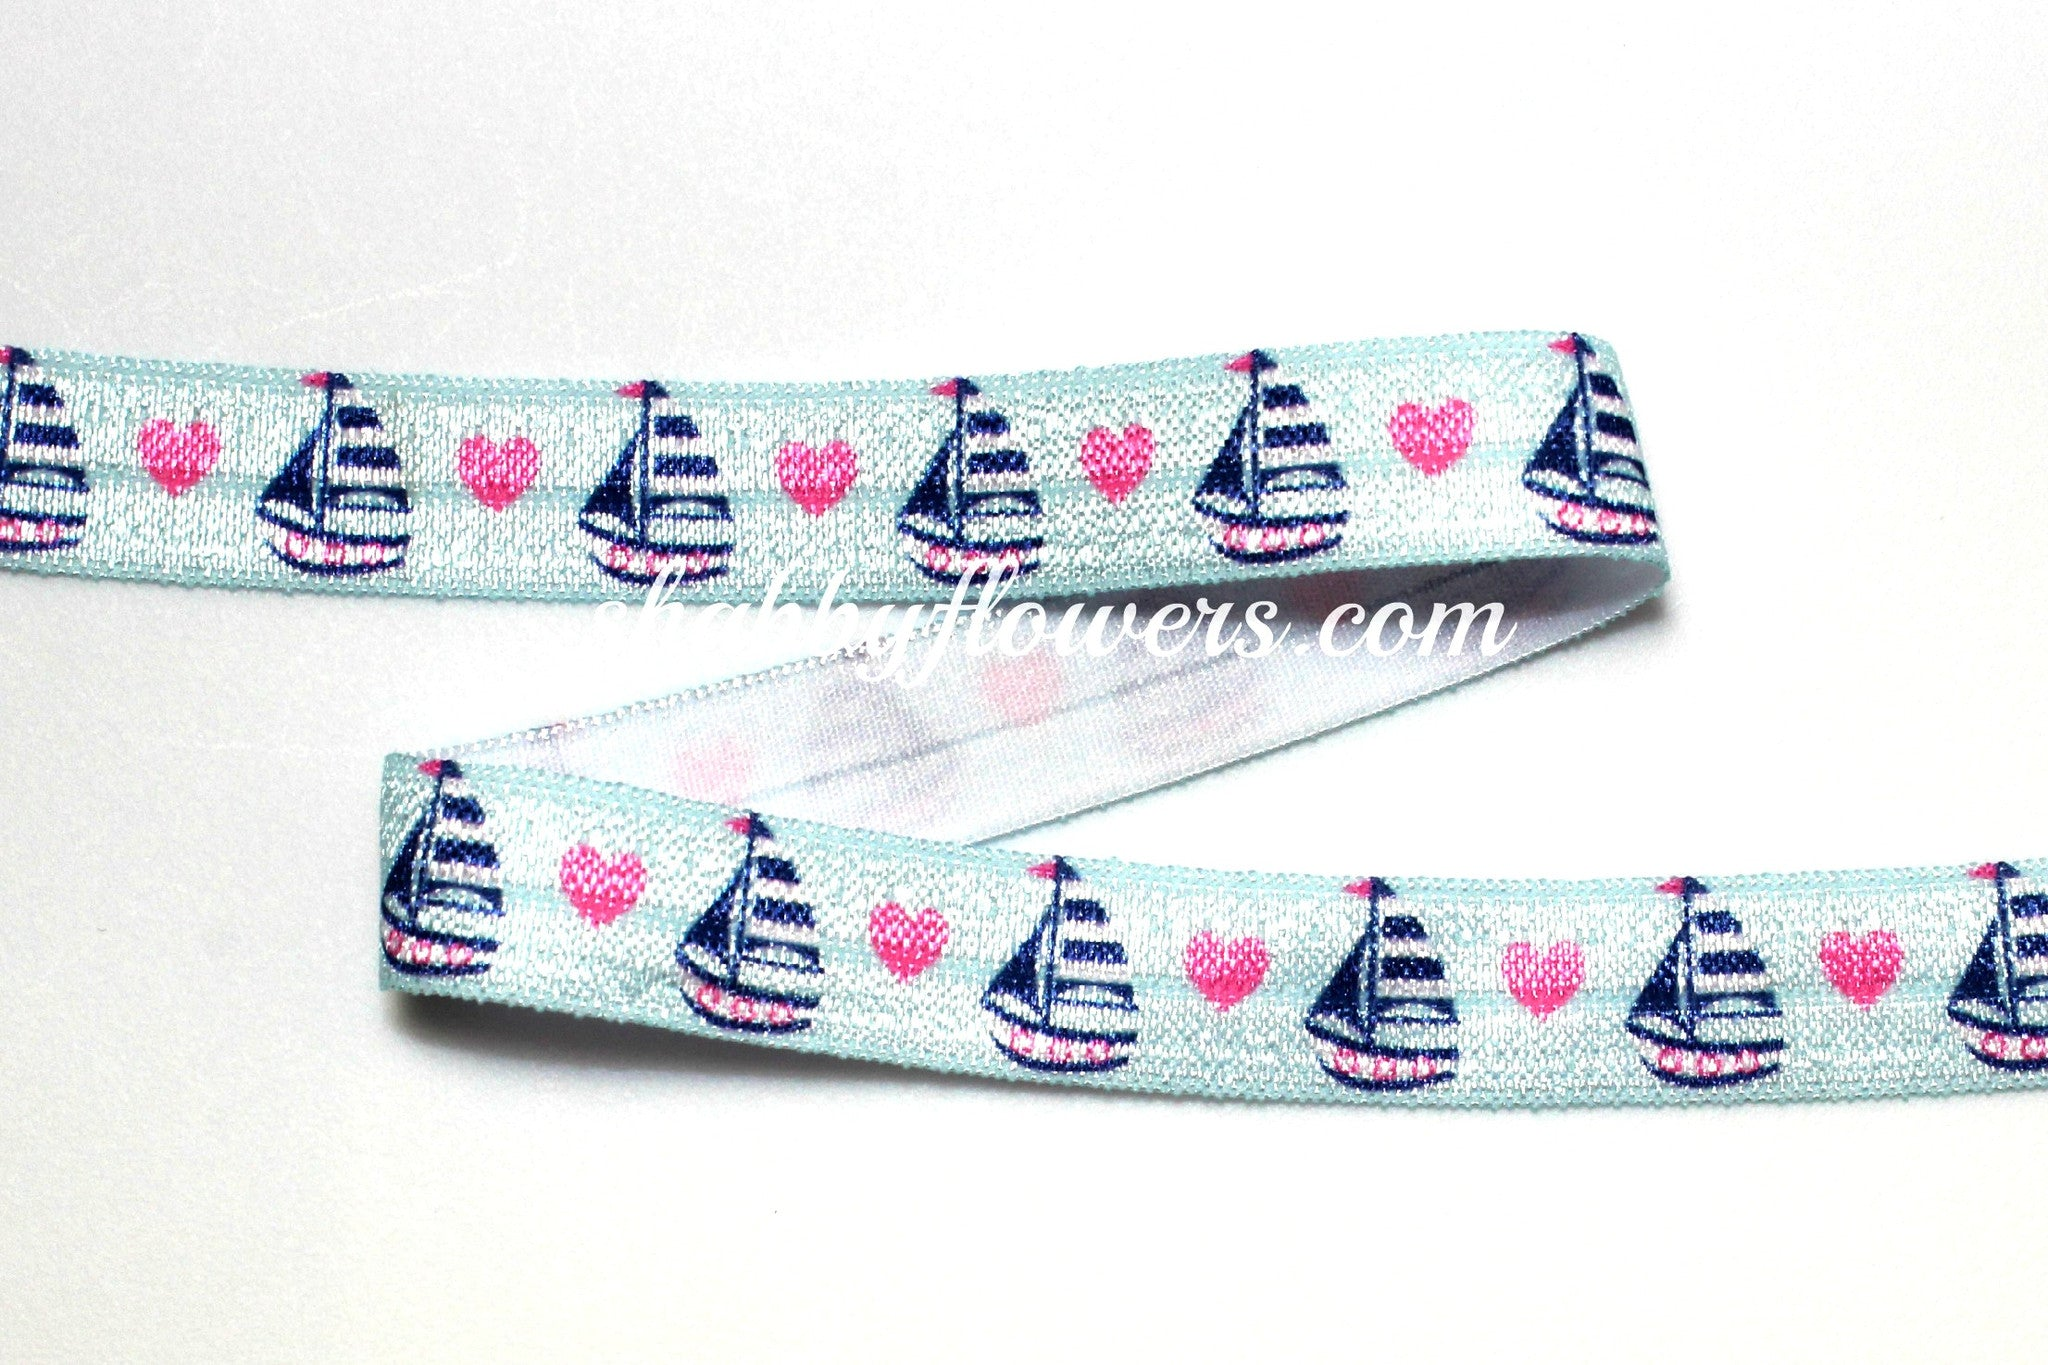 Elastic - Sailboat - shabbyflowers.com